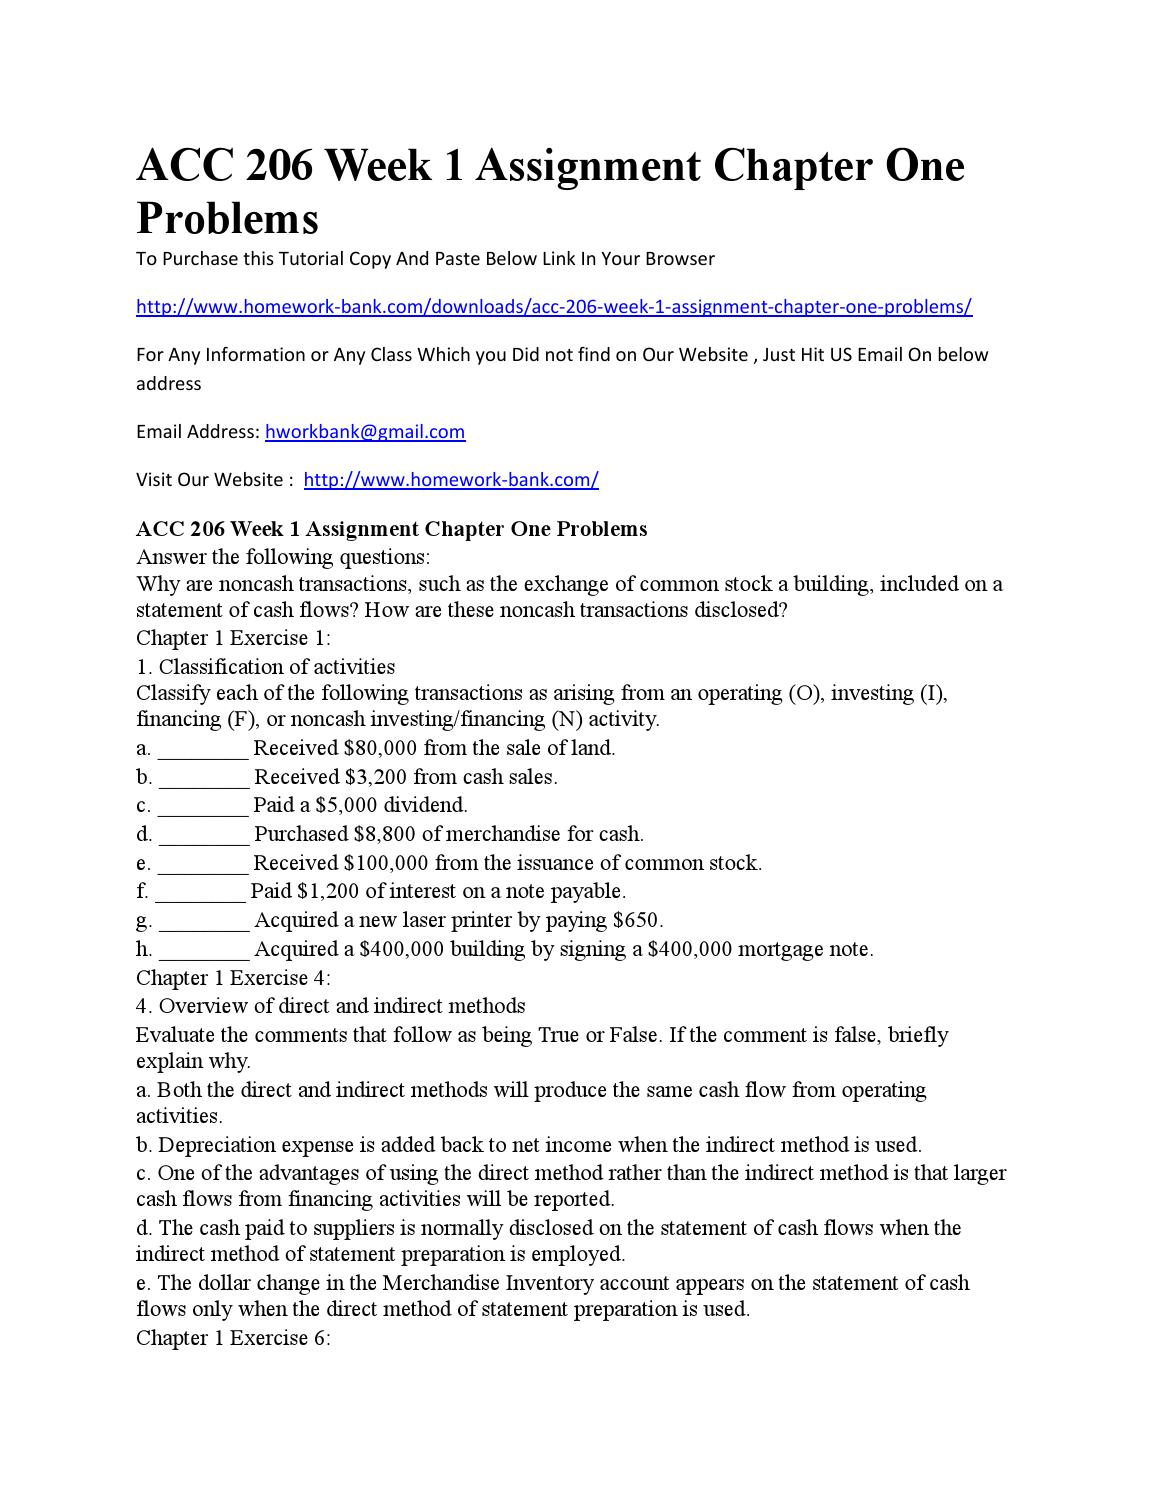 ACC 206 Week 2 Assignment, Quiz and Question Paper